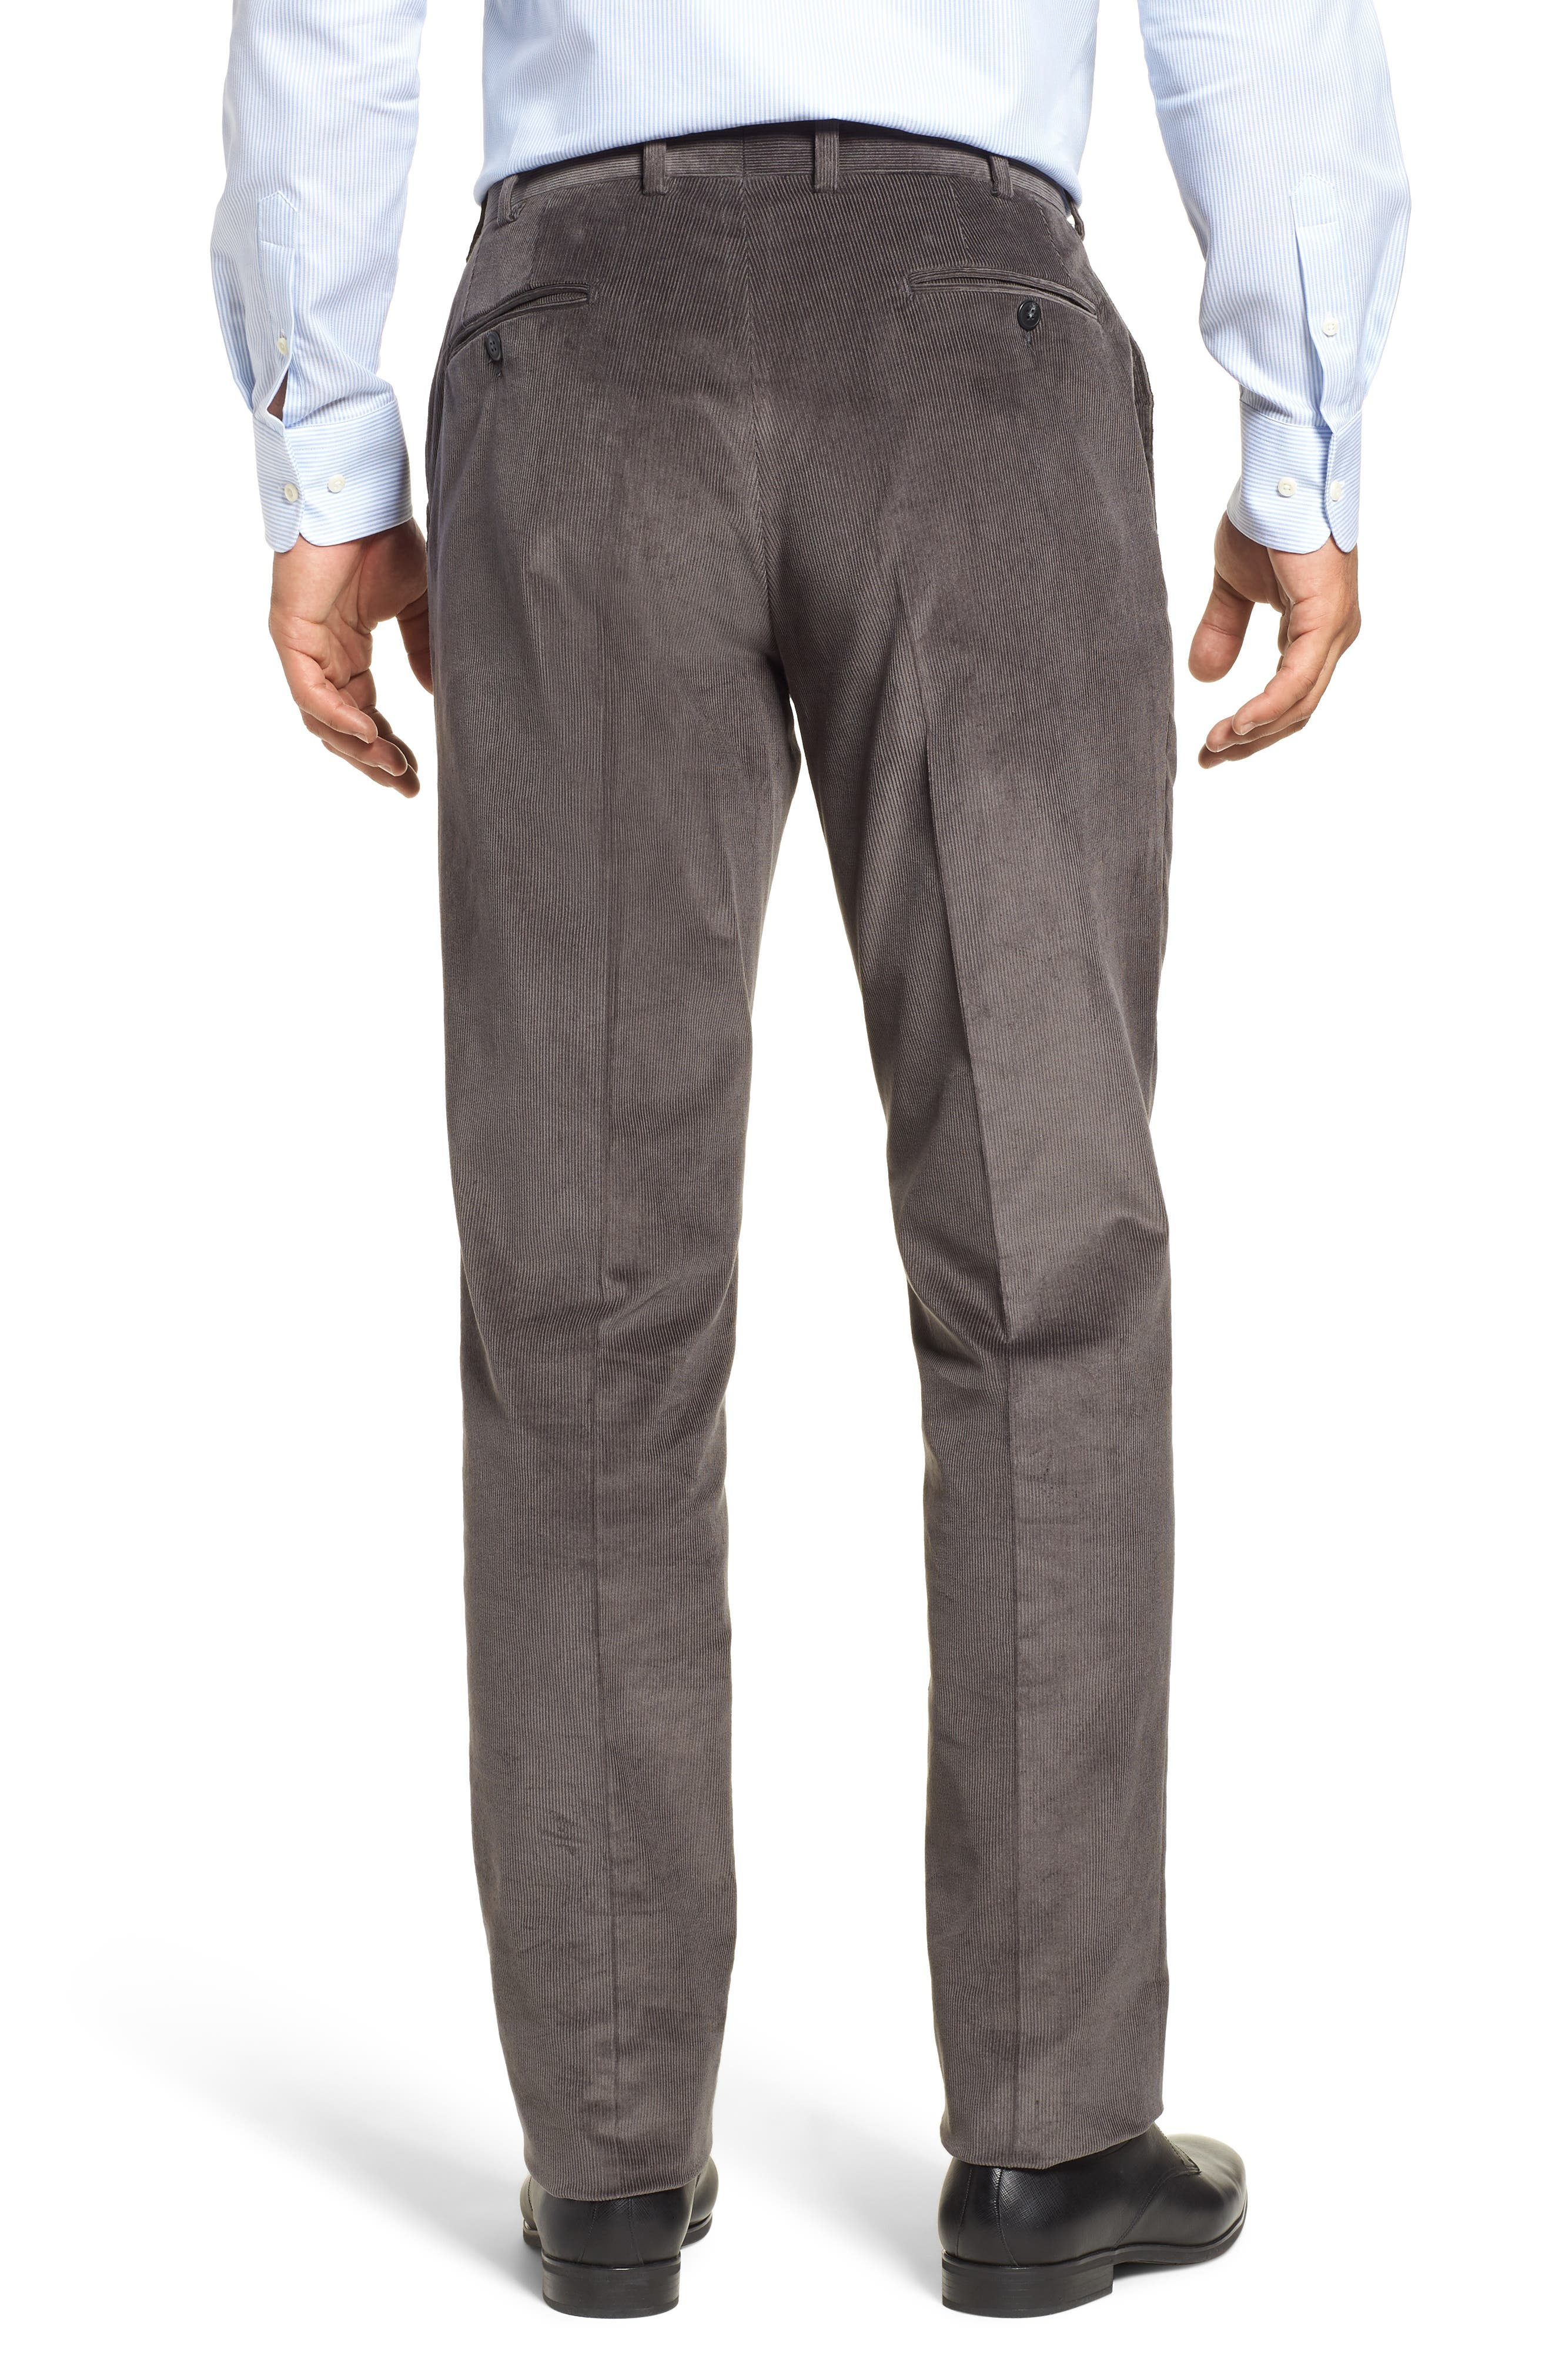 Torino Traditional Fit Flat Front Corduroy Trousers,                             Alternate thumbnail 2, color,                             GREY